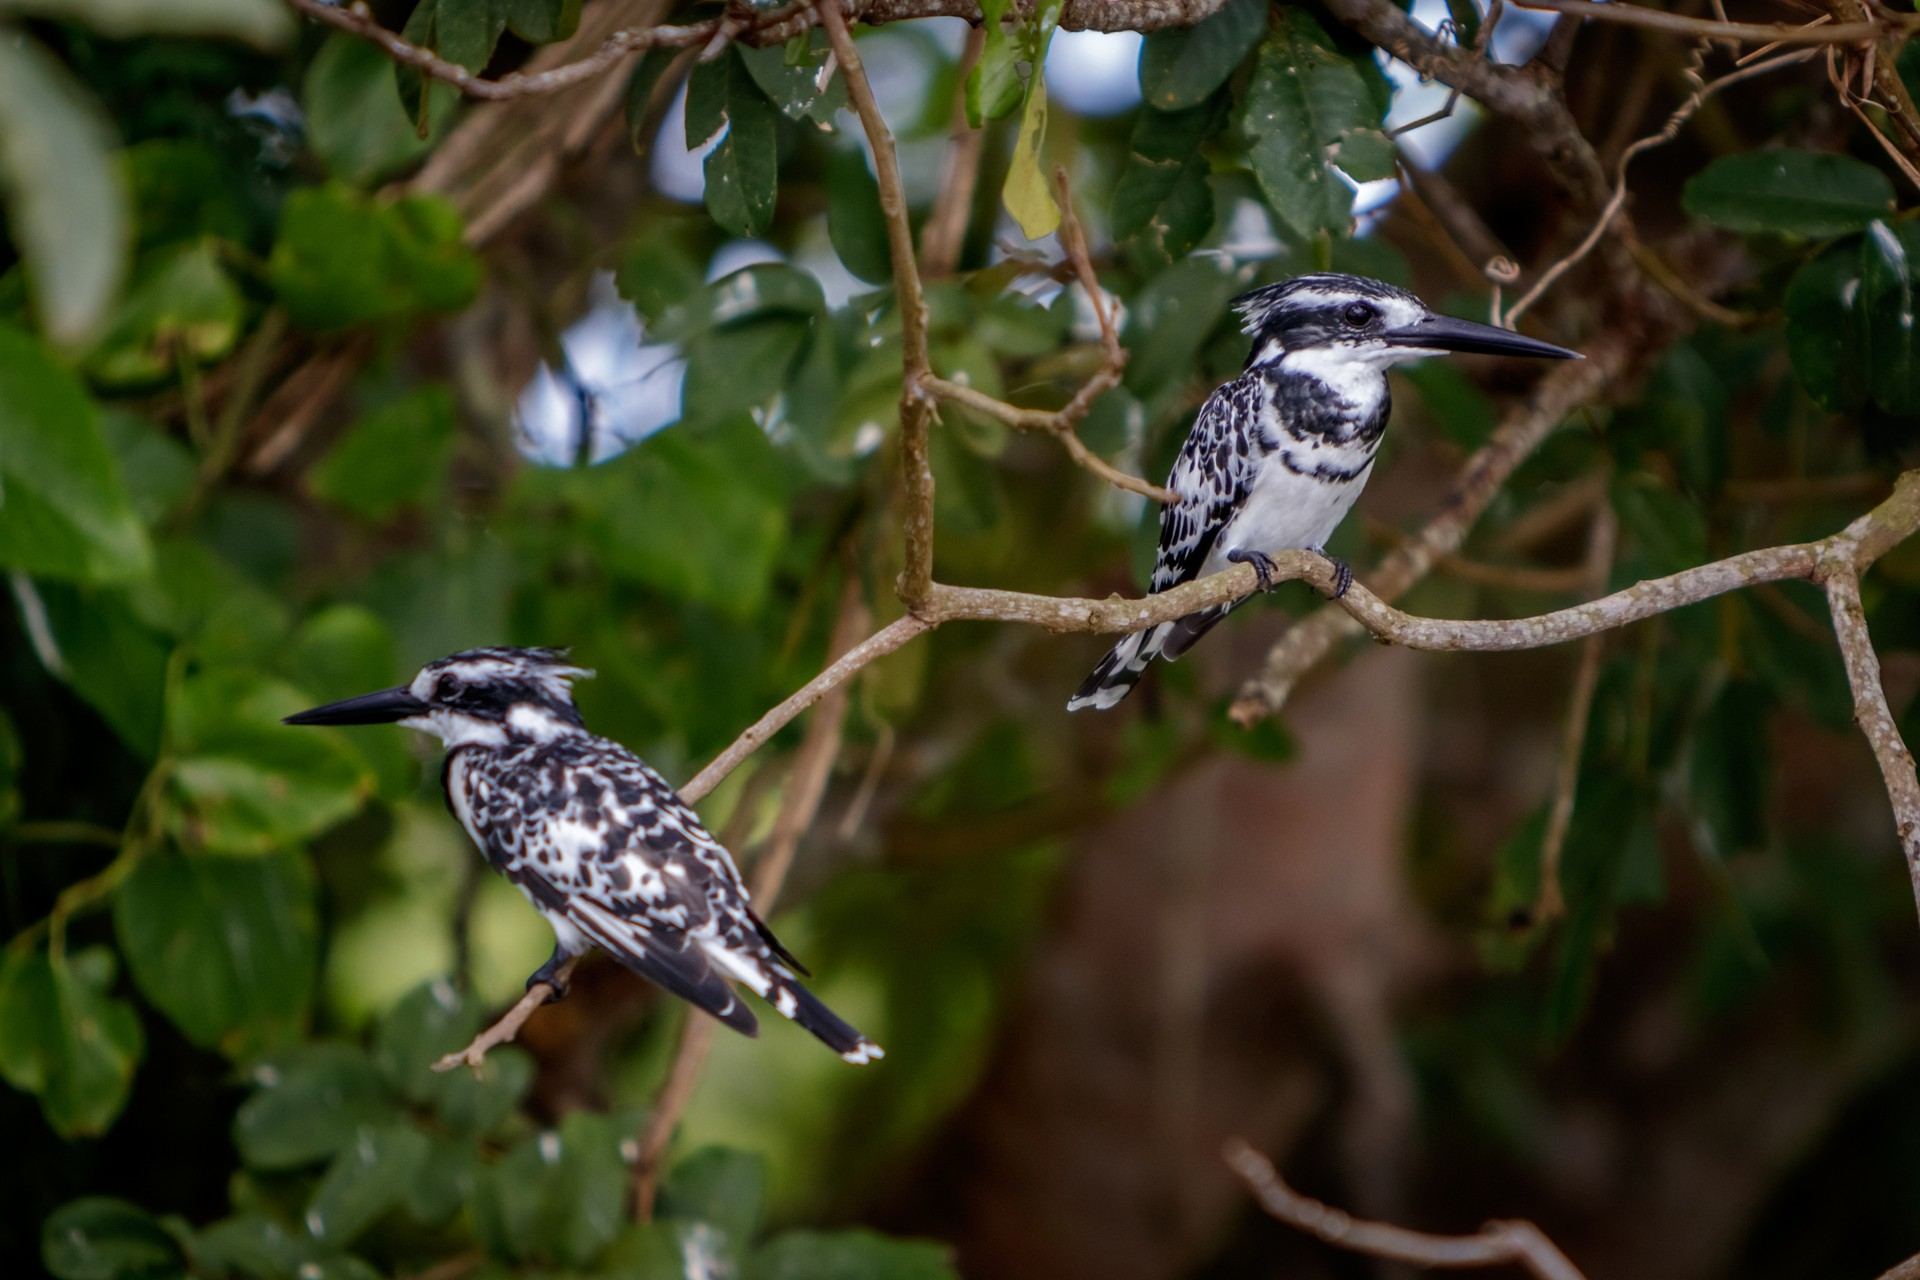 Pied kingfishers in Murchison Falls National Park